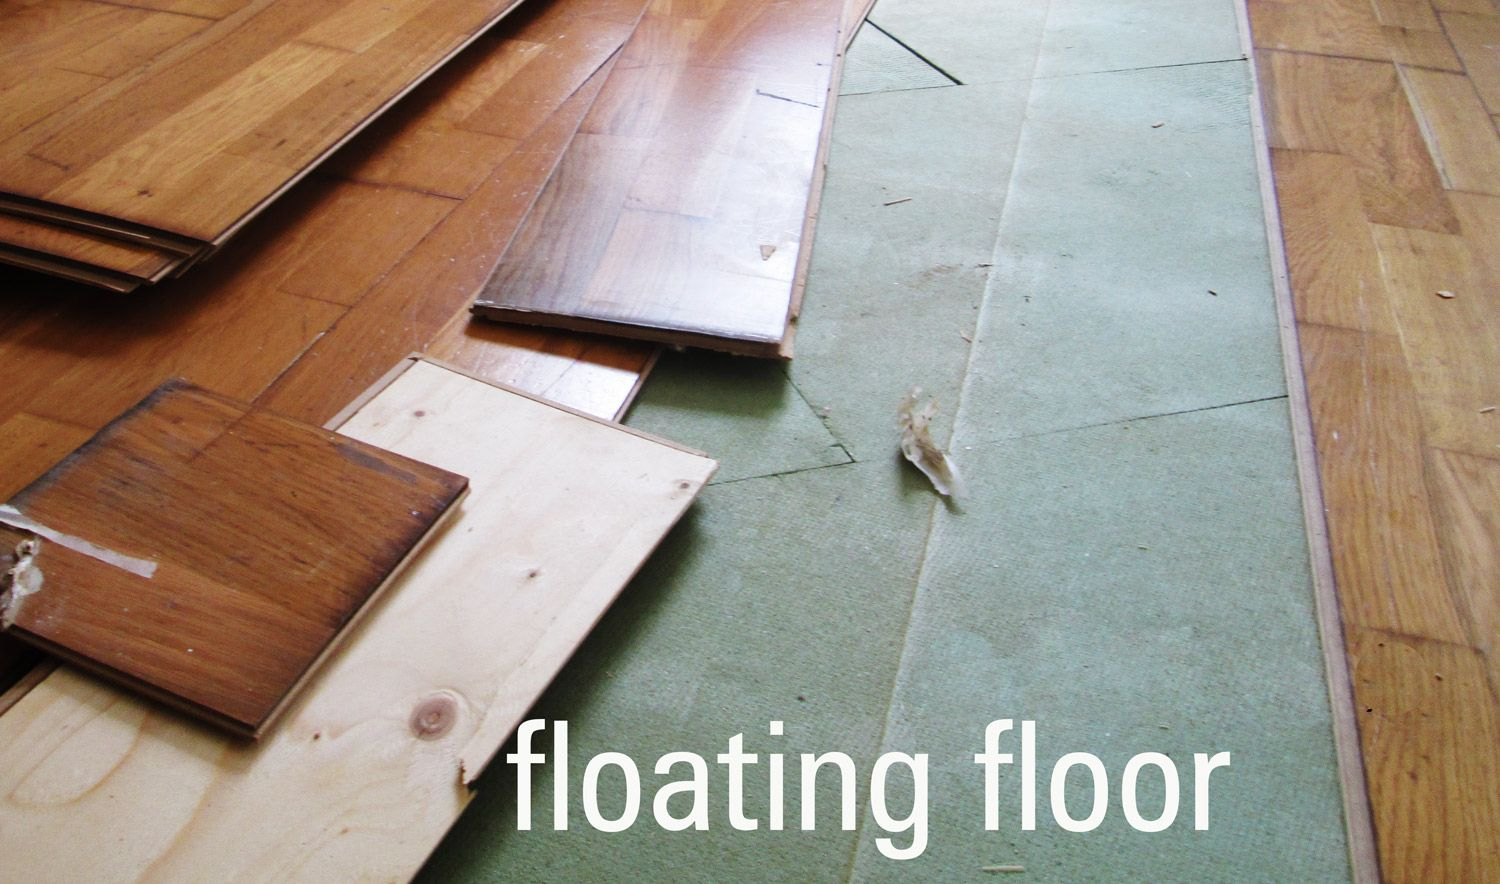 floating floor Wood Flooring Facts Pinterest Floating floor